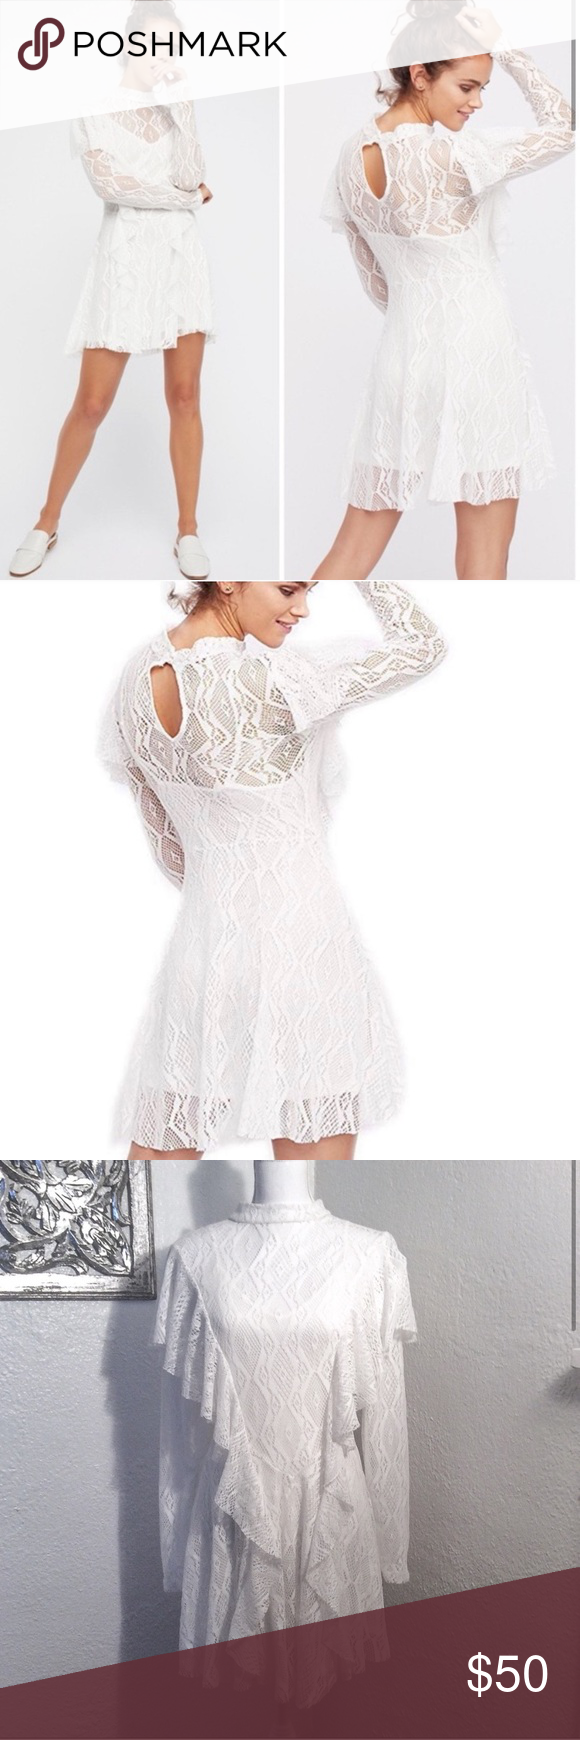 """NEW Free People Mock Lace Dress Beautiful lace mock neck Free People dress. Long sleeves with ruffle details. Has a spaghetti strap lining underneath lace.   NWT Tag was removed but will come with it Color: Ivory Size: small  Lace approximate measurements: Bust: 36"""" Waist: 30"""" Length: 33"""" Collar: 19""""/20""""  Submit an offer 💕  #0023 Free People Dresses Mini"""